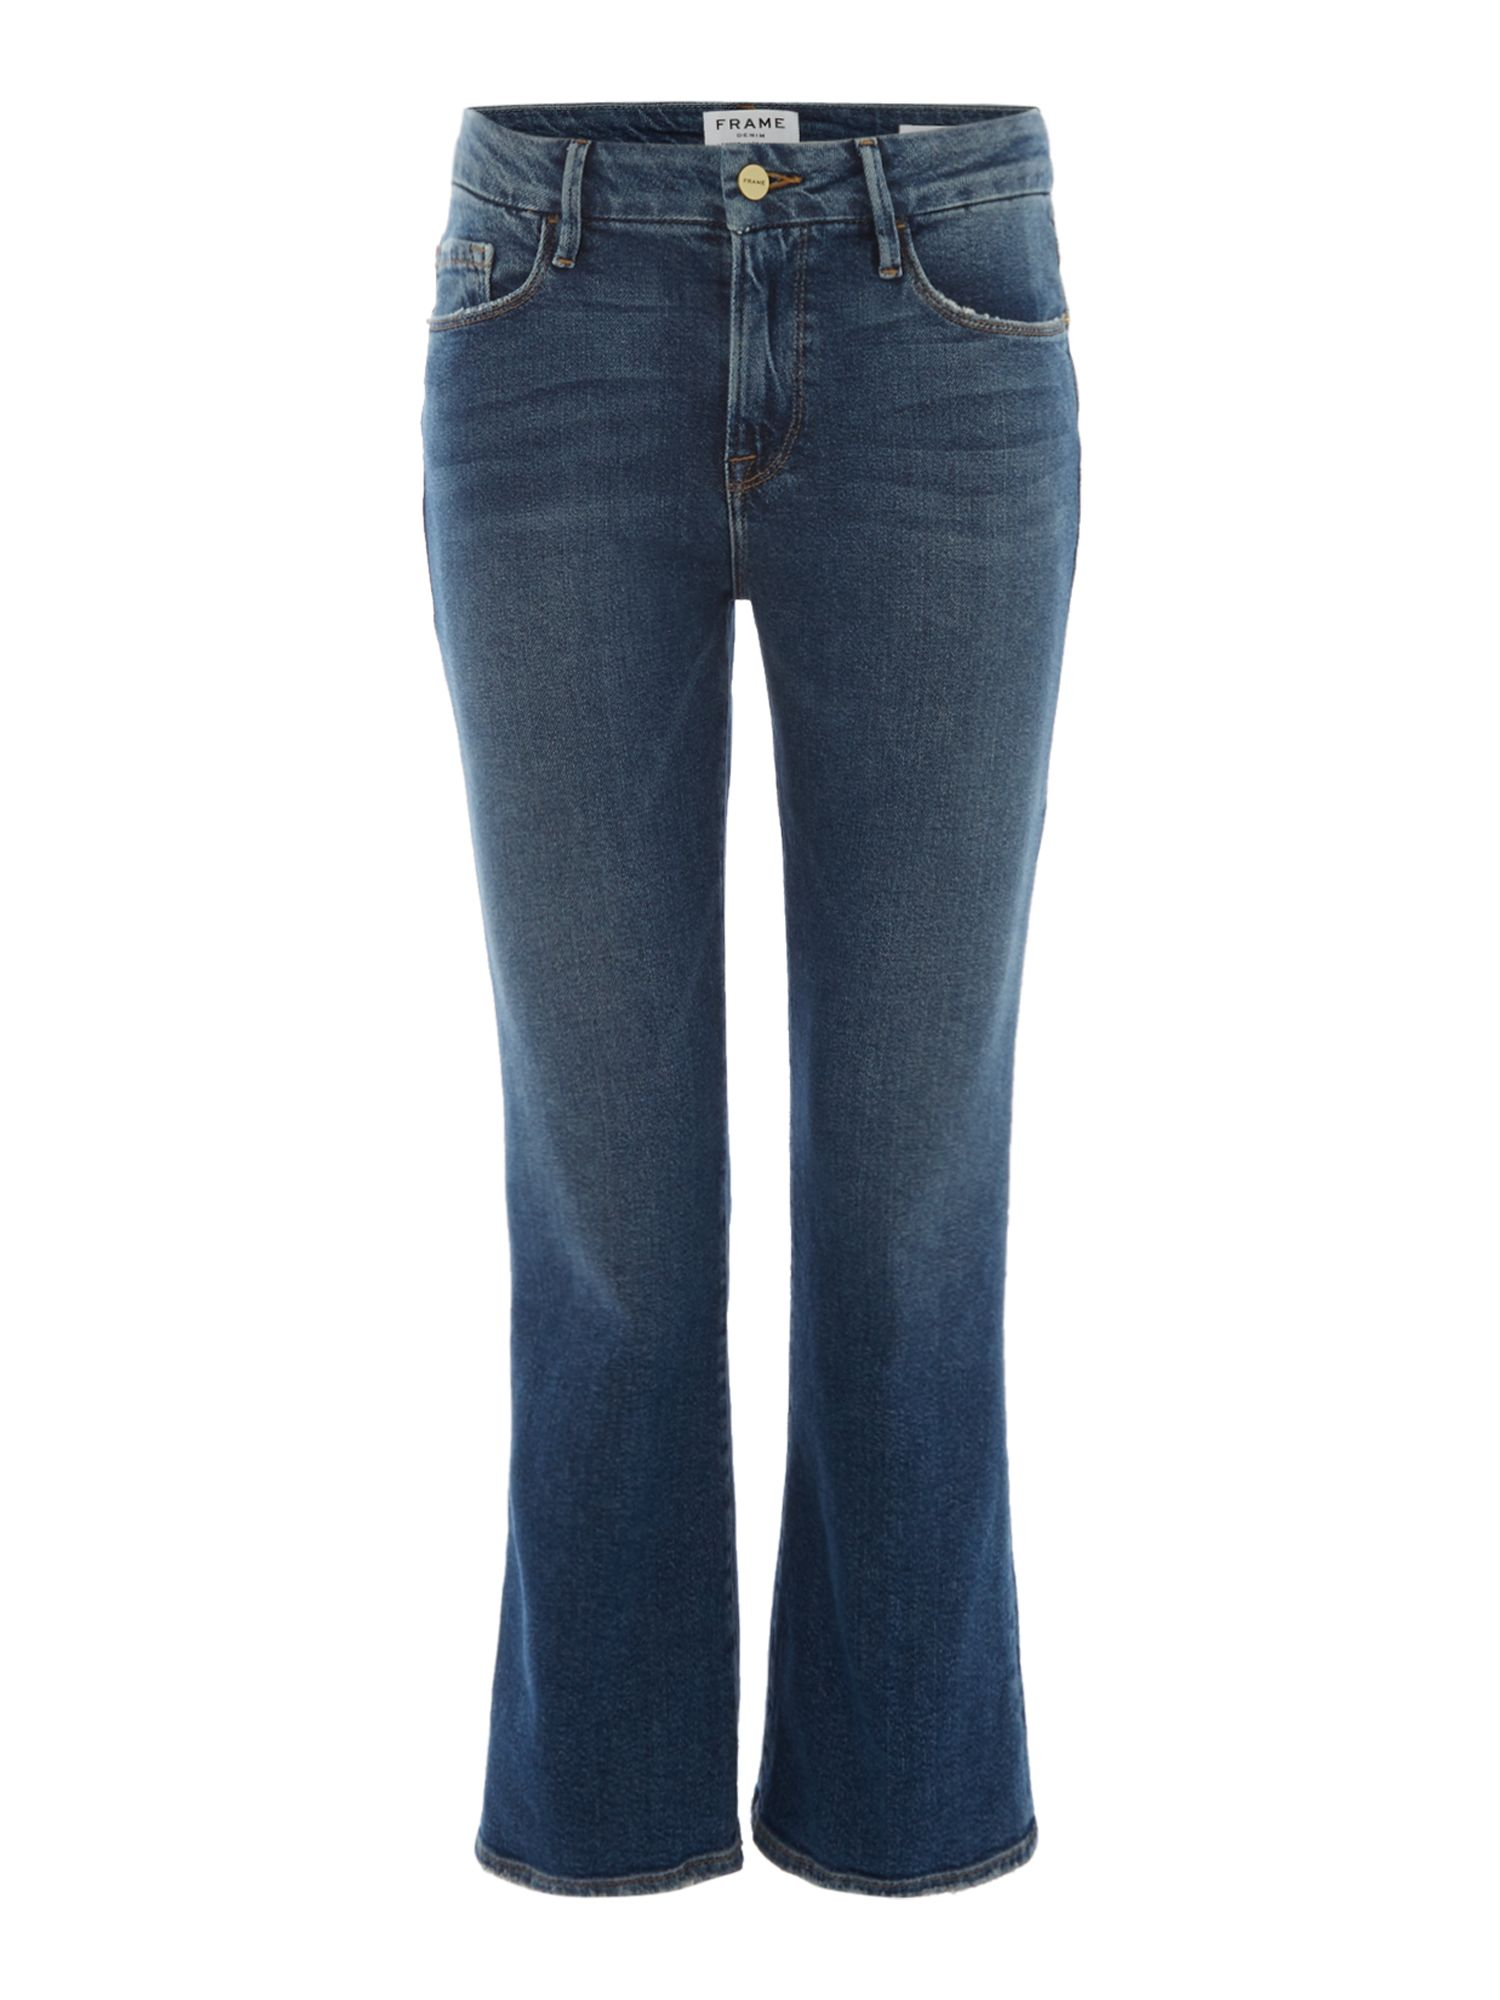 Frame Le Crop Mini Boot Jeans in Elmont, Denim Mid Wash